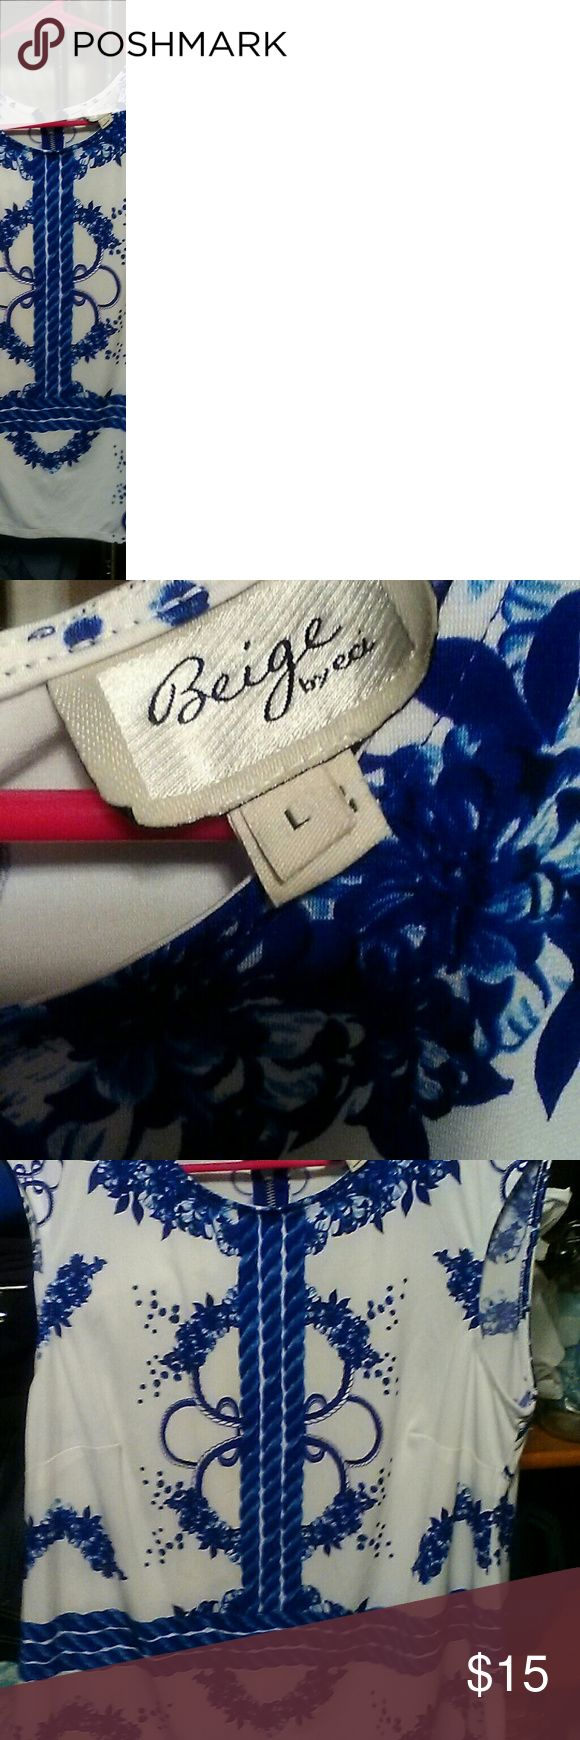 Blue and White Blouse Blue and white. Size Large, sleeveless top. Tops Blouses